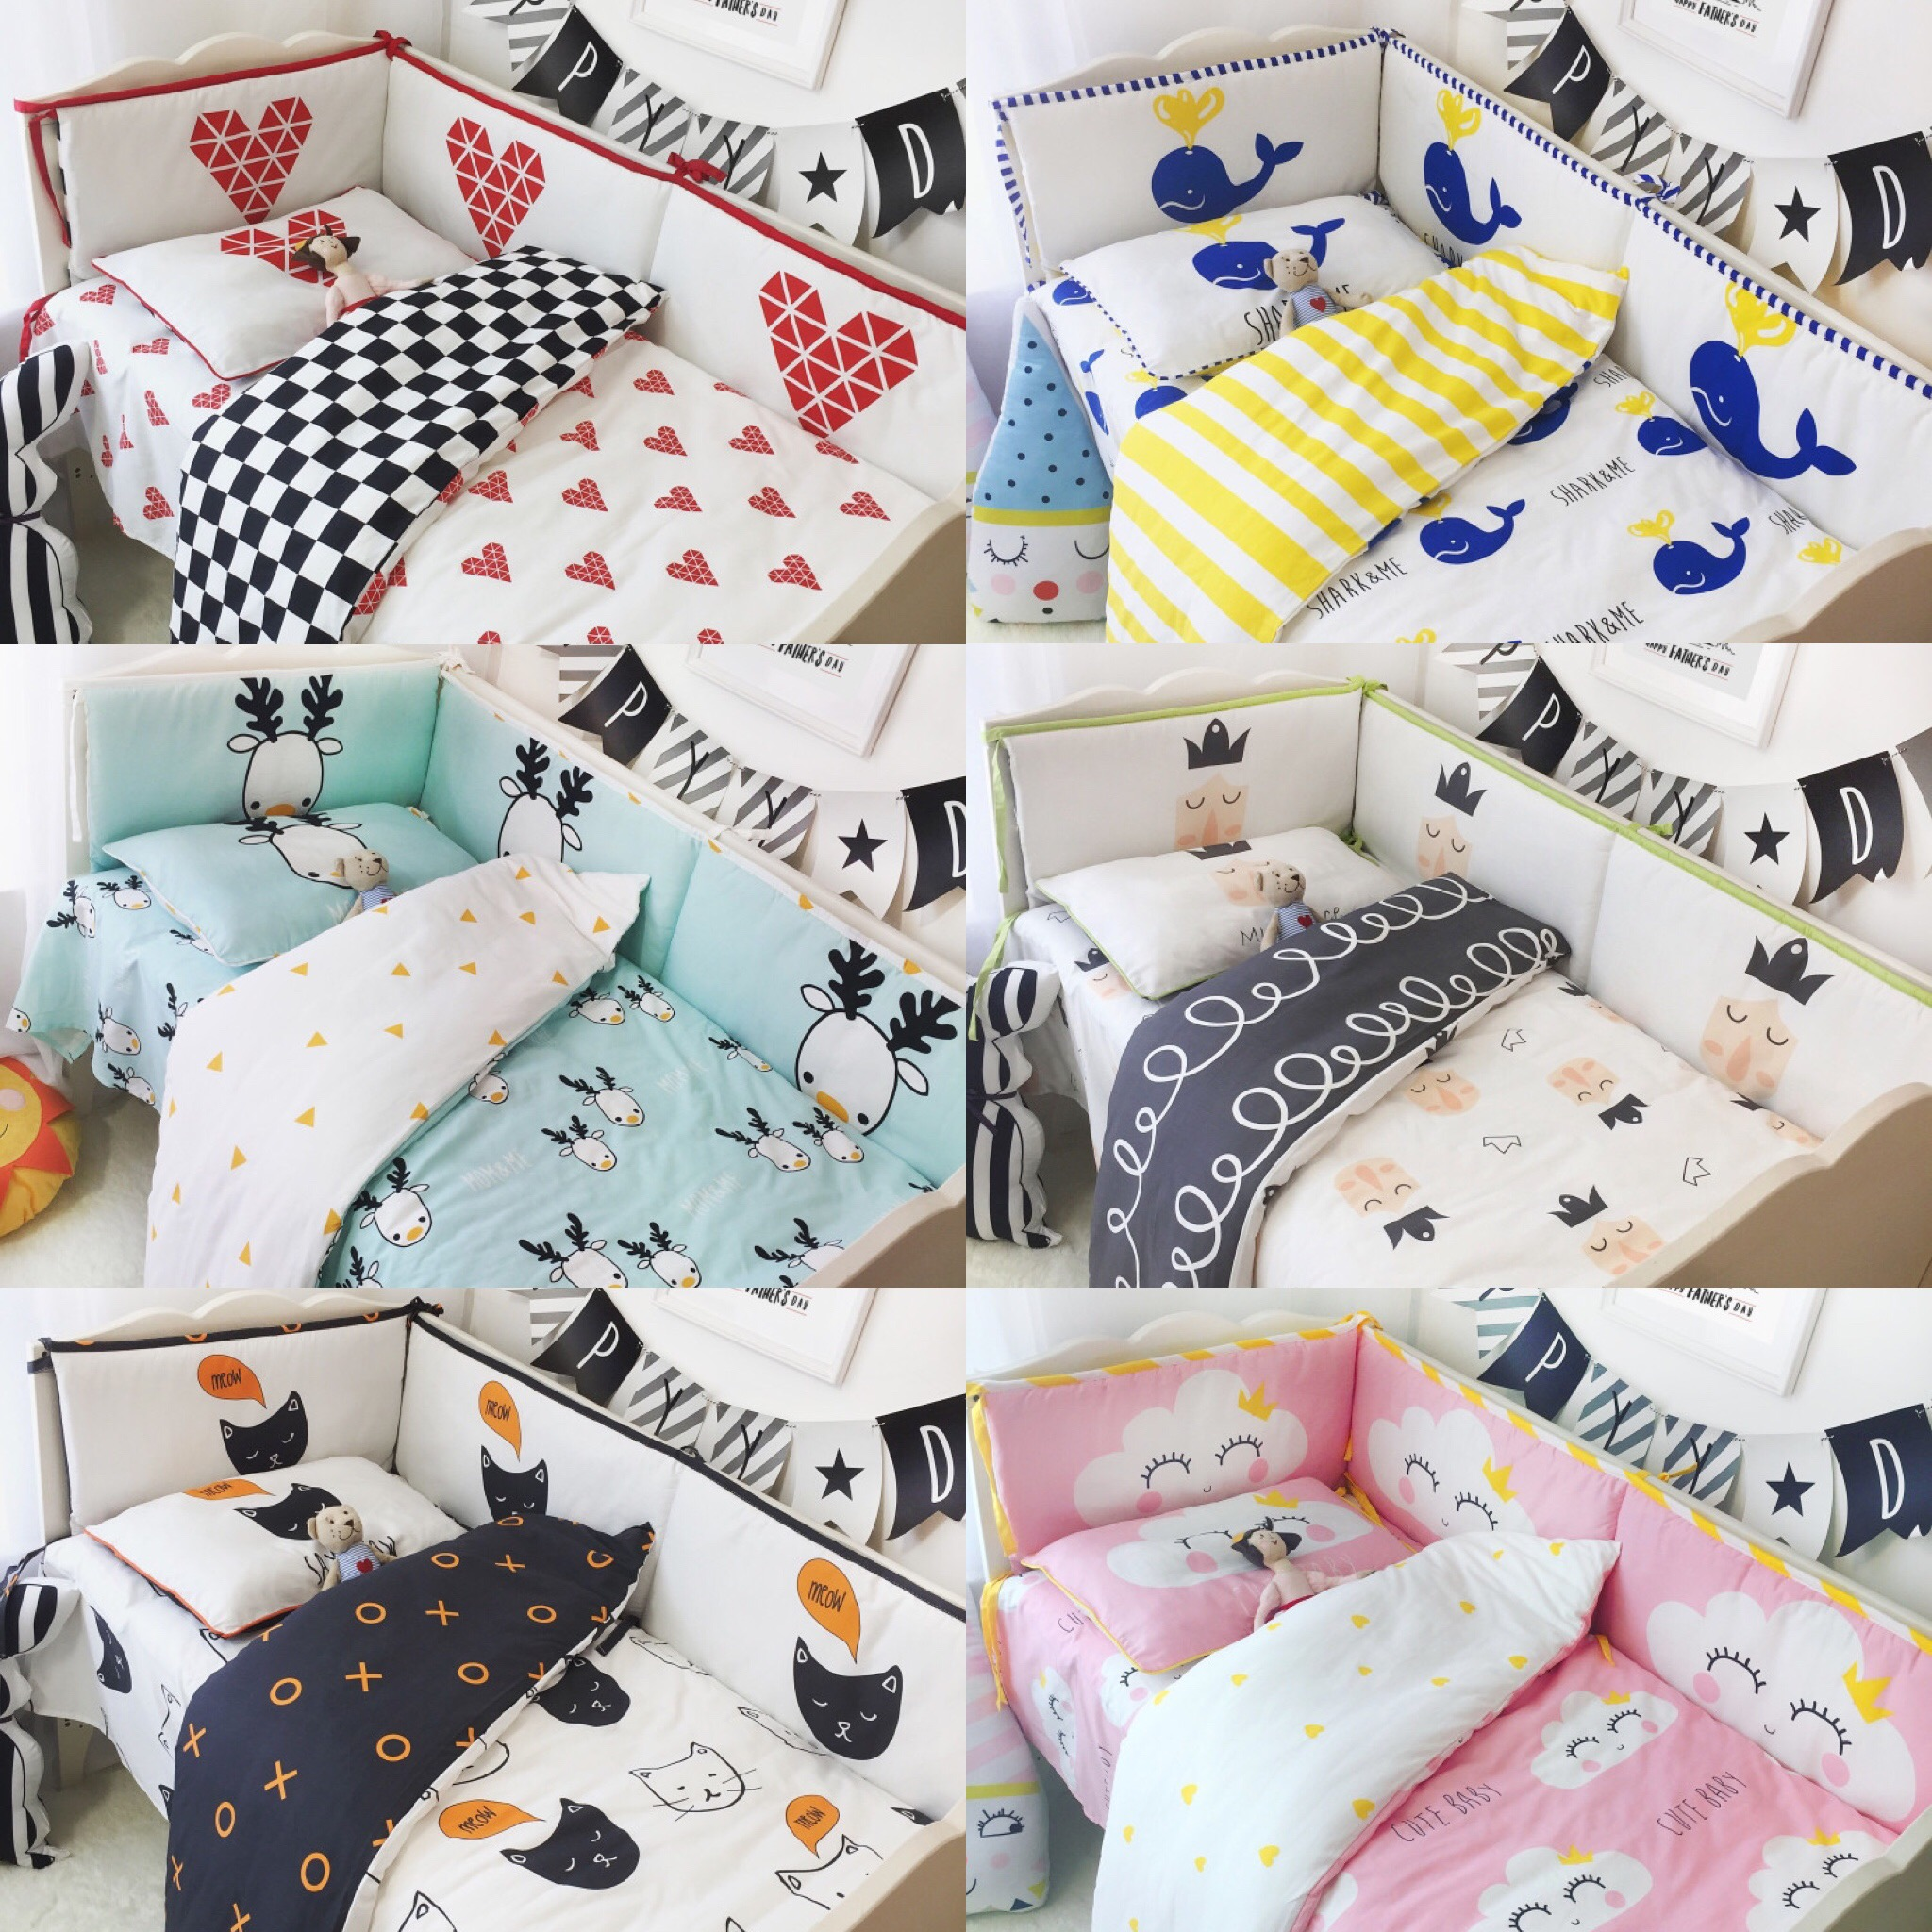 7pcs / set Ins baby bedding cotton baby bedding cot set Bumper Baby Cot Sets Bed Around Protector Pink Clouds Deer whale crown ручка шариковая carandache office infinite 888 253 gb swiss cross m синие чернила подар кор